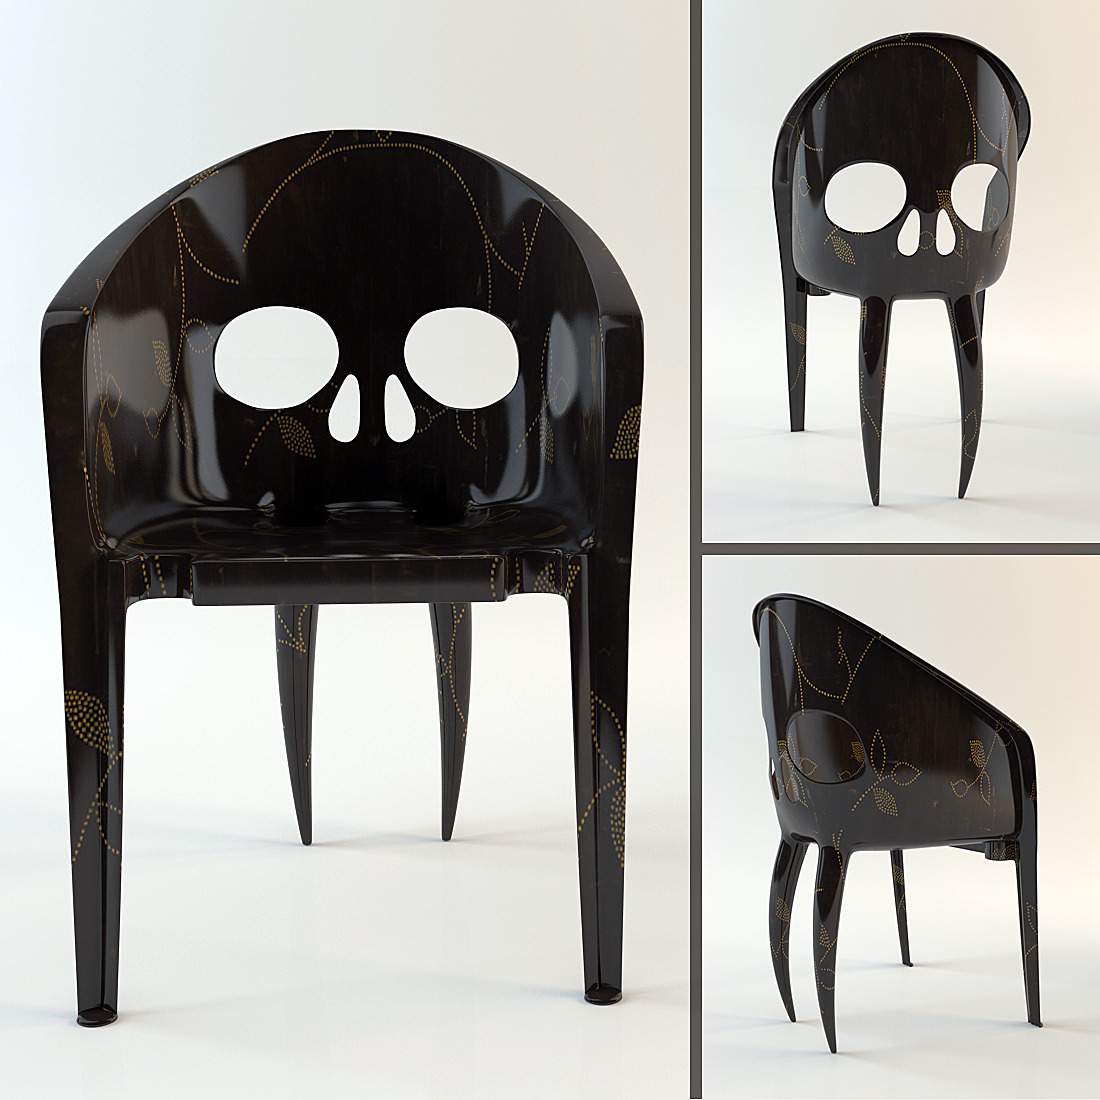 wooden skull chair without back quotthe with fangs quot hi poly model by valentin